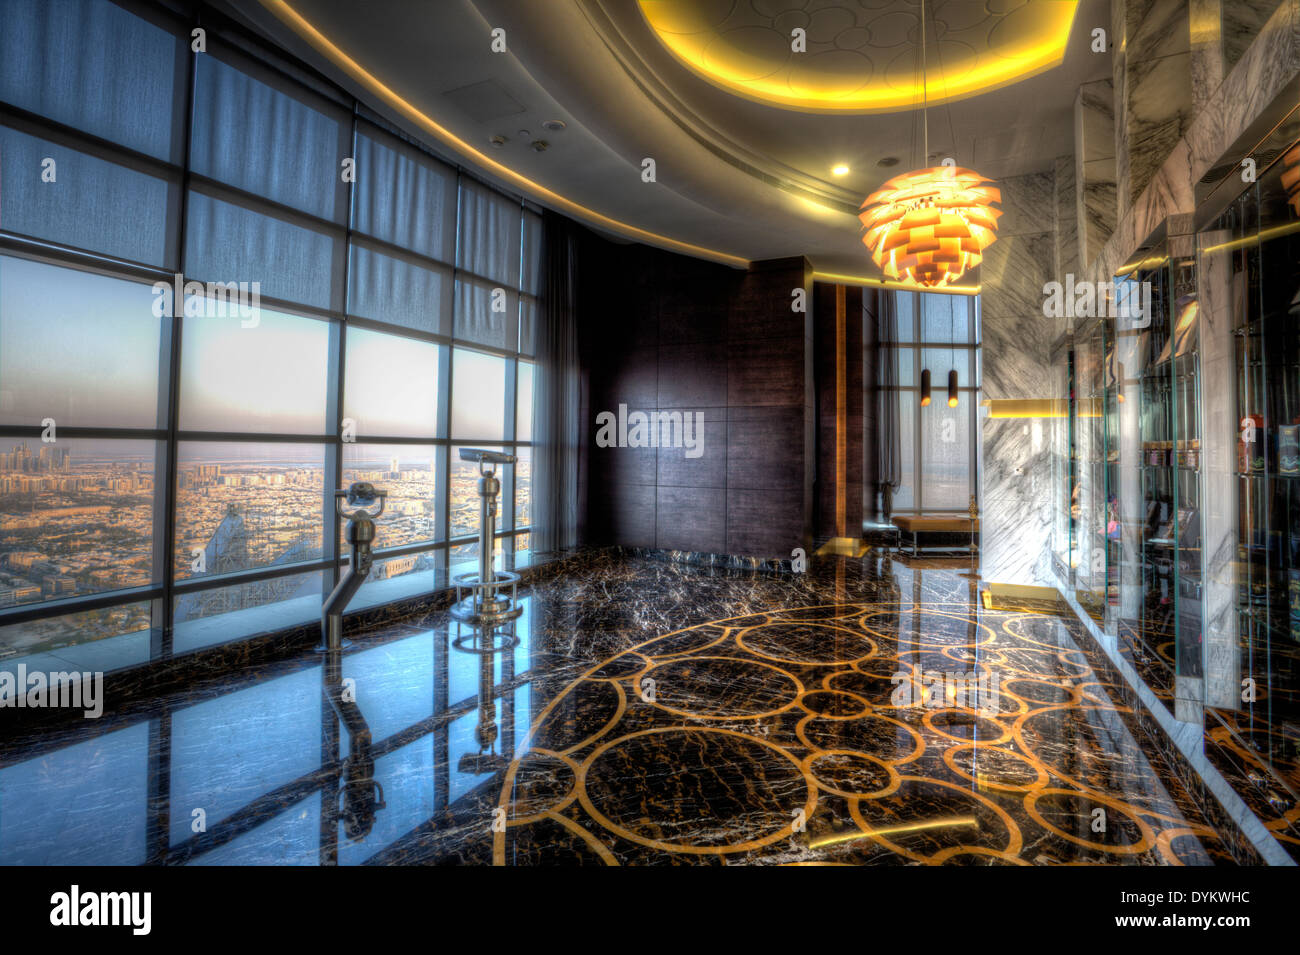 Observation Deck at 300 inside of the Etihad Towers, Abu Dhabi, United Arab Emirates - Stock Image